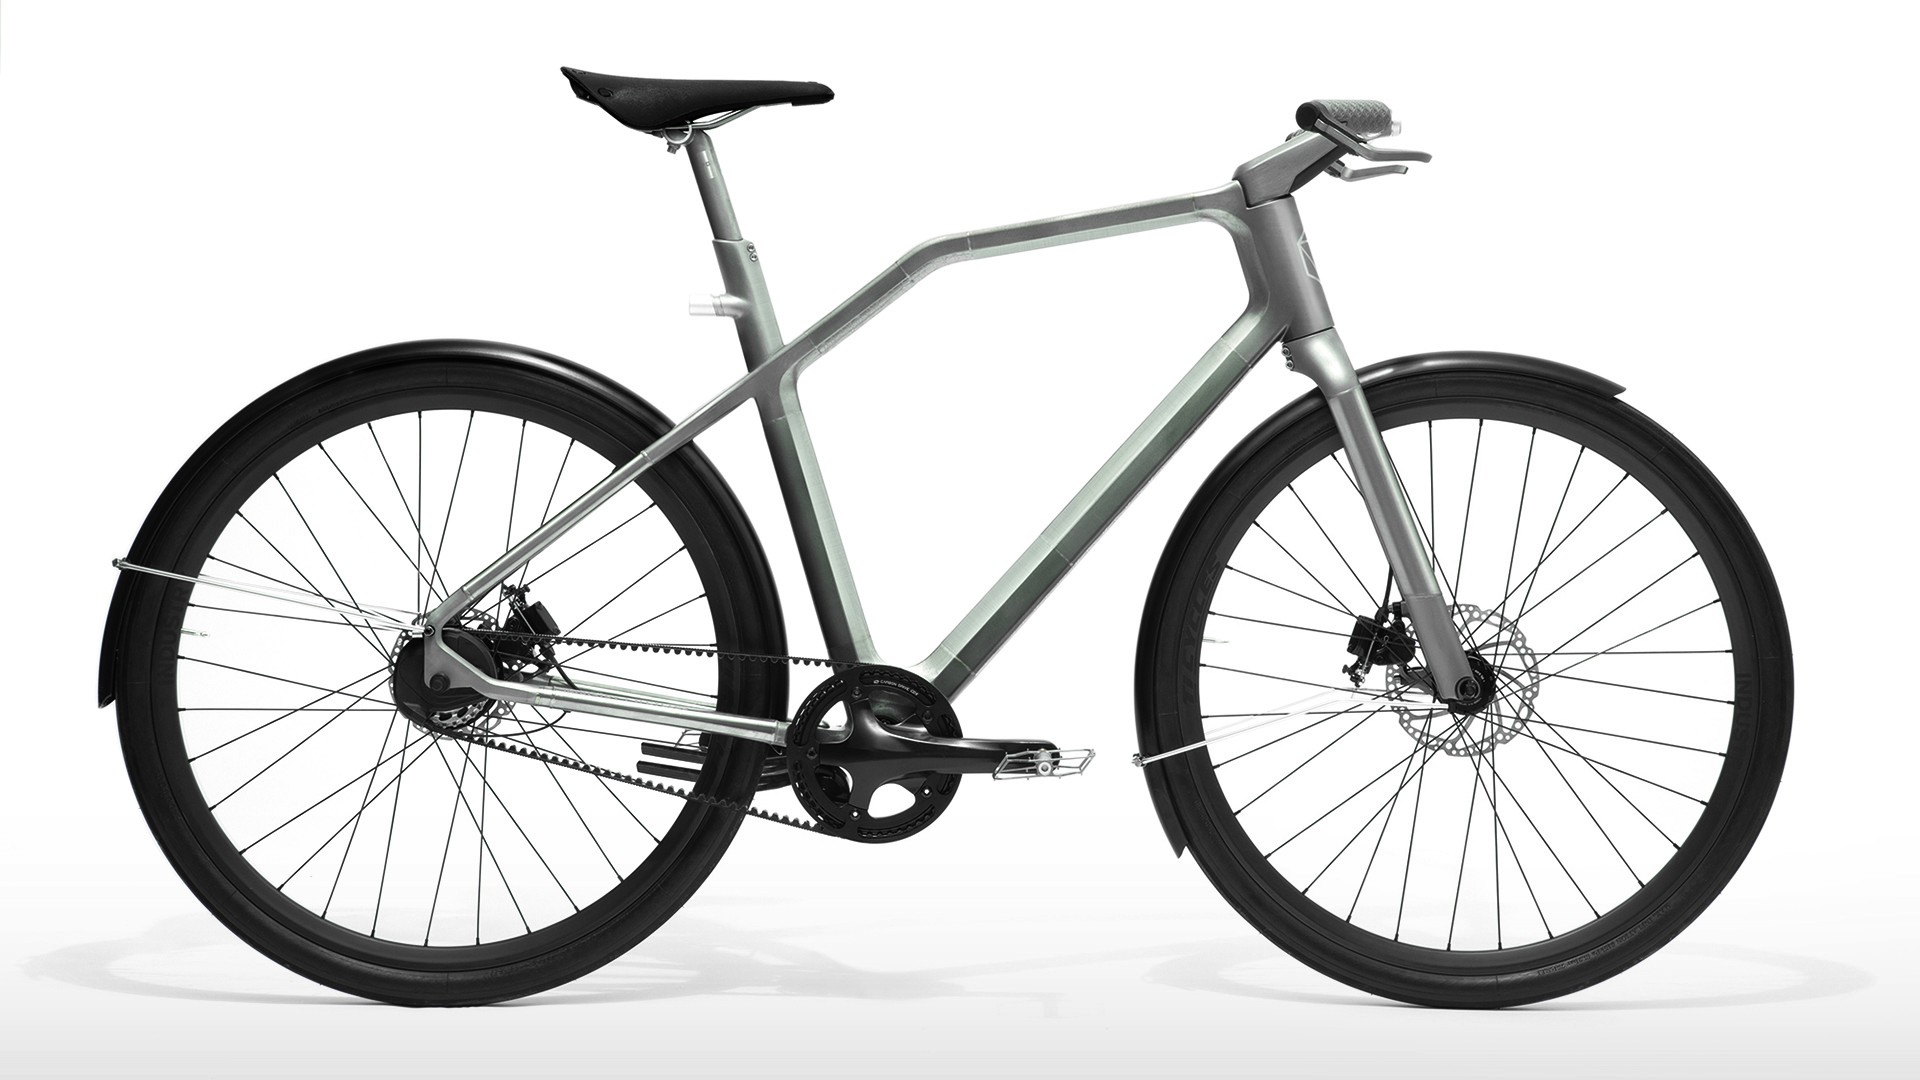 3D PRINTED URBAN ROAD BIKE MADE OF TITANIUM WITH HAPTIC HANDLEBAR TECHNOLOGY AND BLUETOOTH CONNECTIVITY